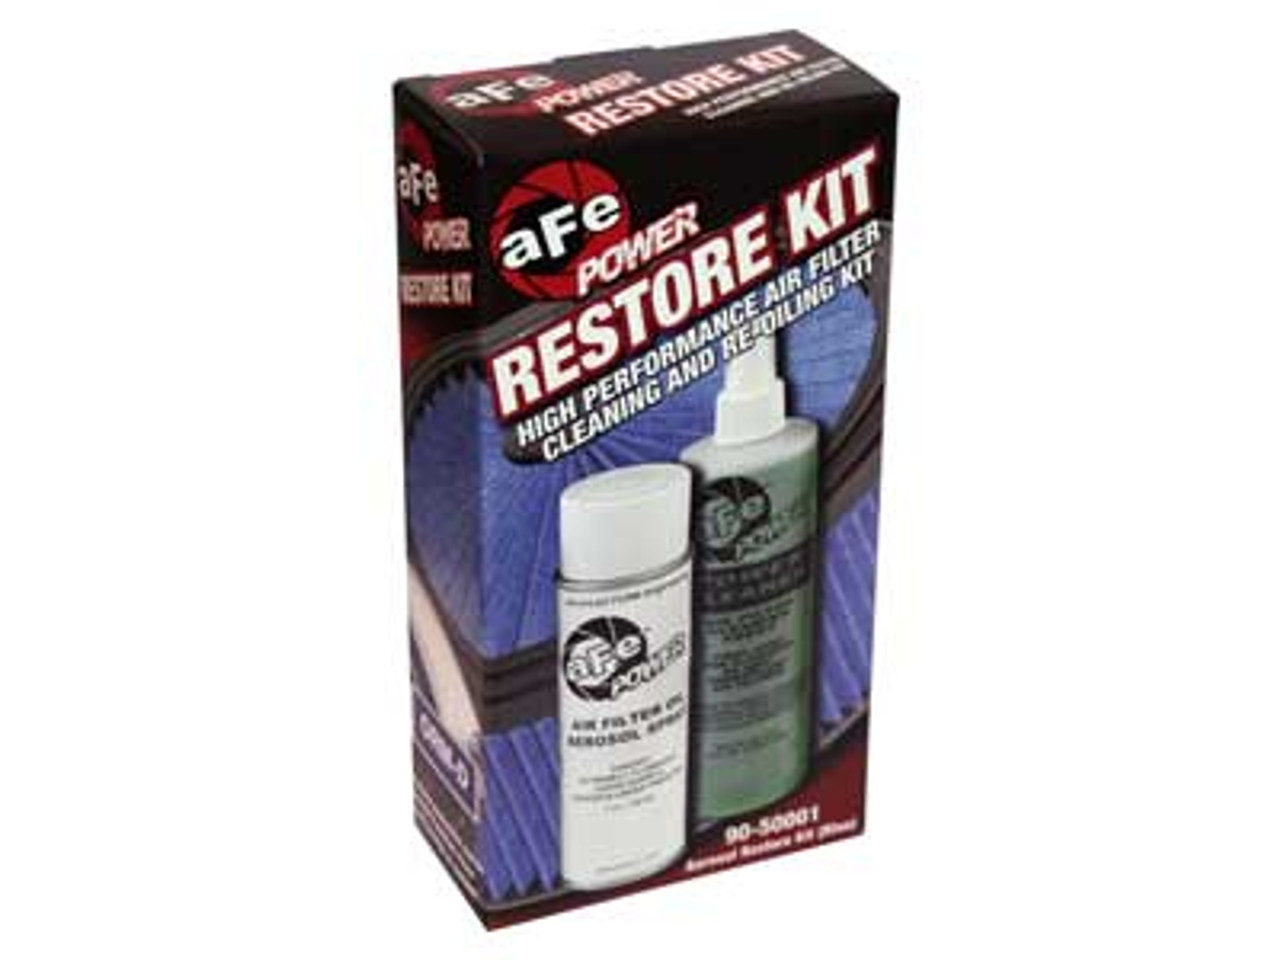 AFE AIR FILTER CLEANING RESTORE KIT BLUE SPRAY - 90-50001